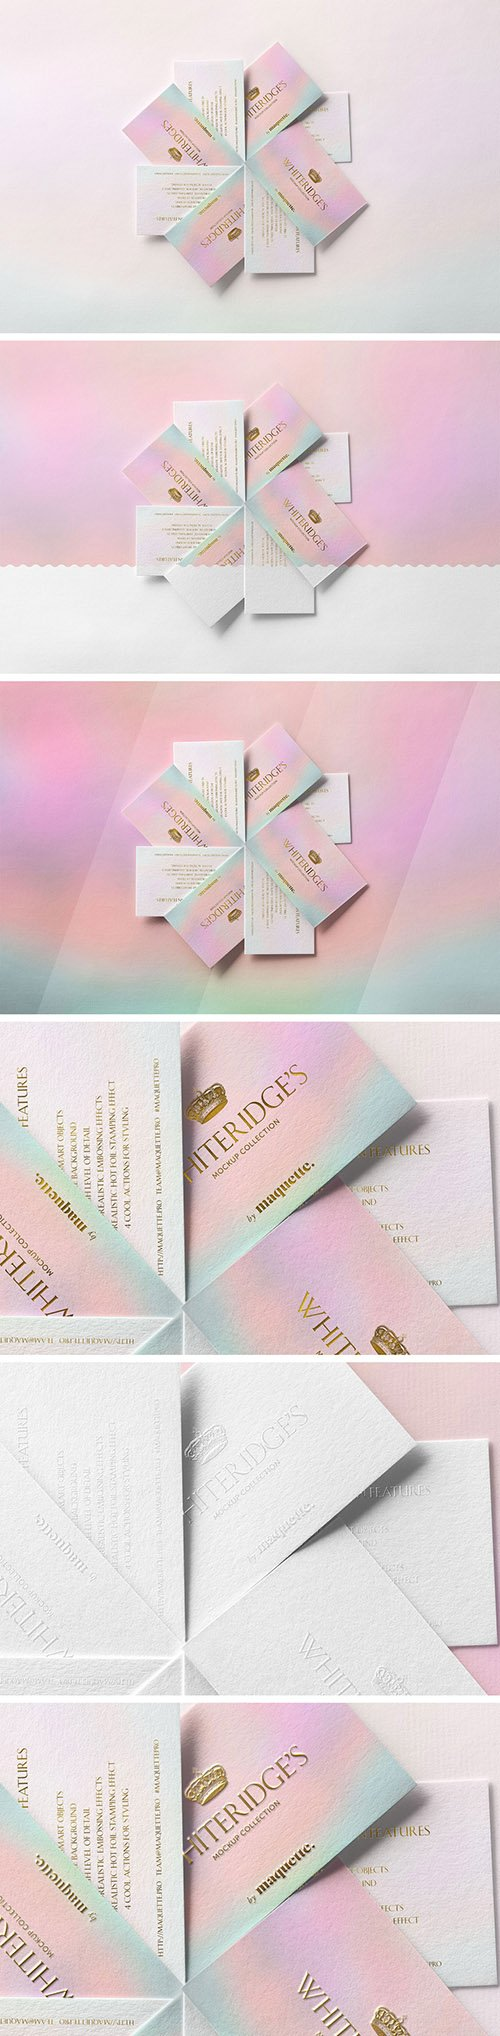 Fan of Luxury Business Cards with Gold Embossing Mockup 2 130433751 PSDT